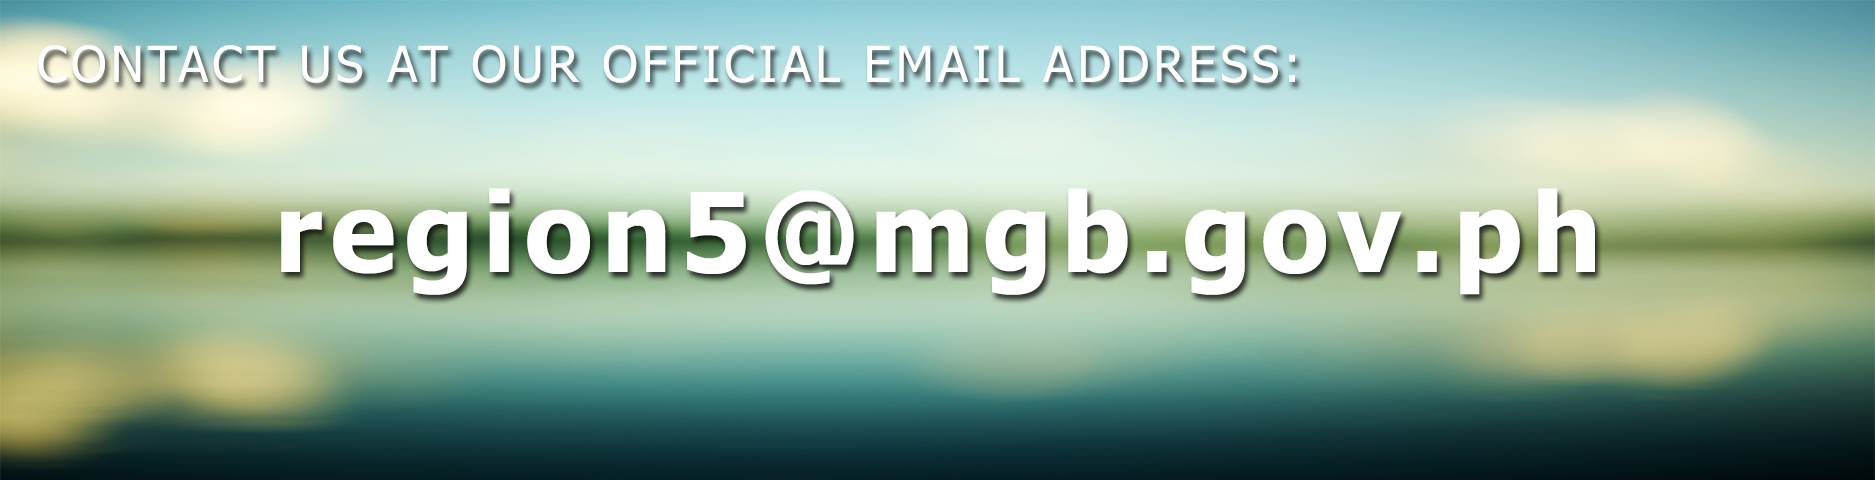 New Official Email Address